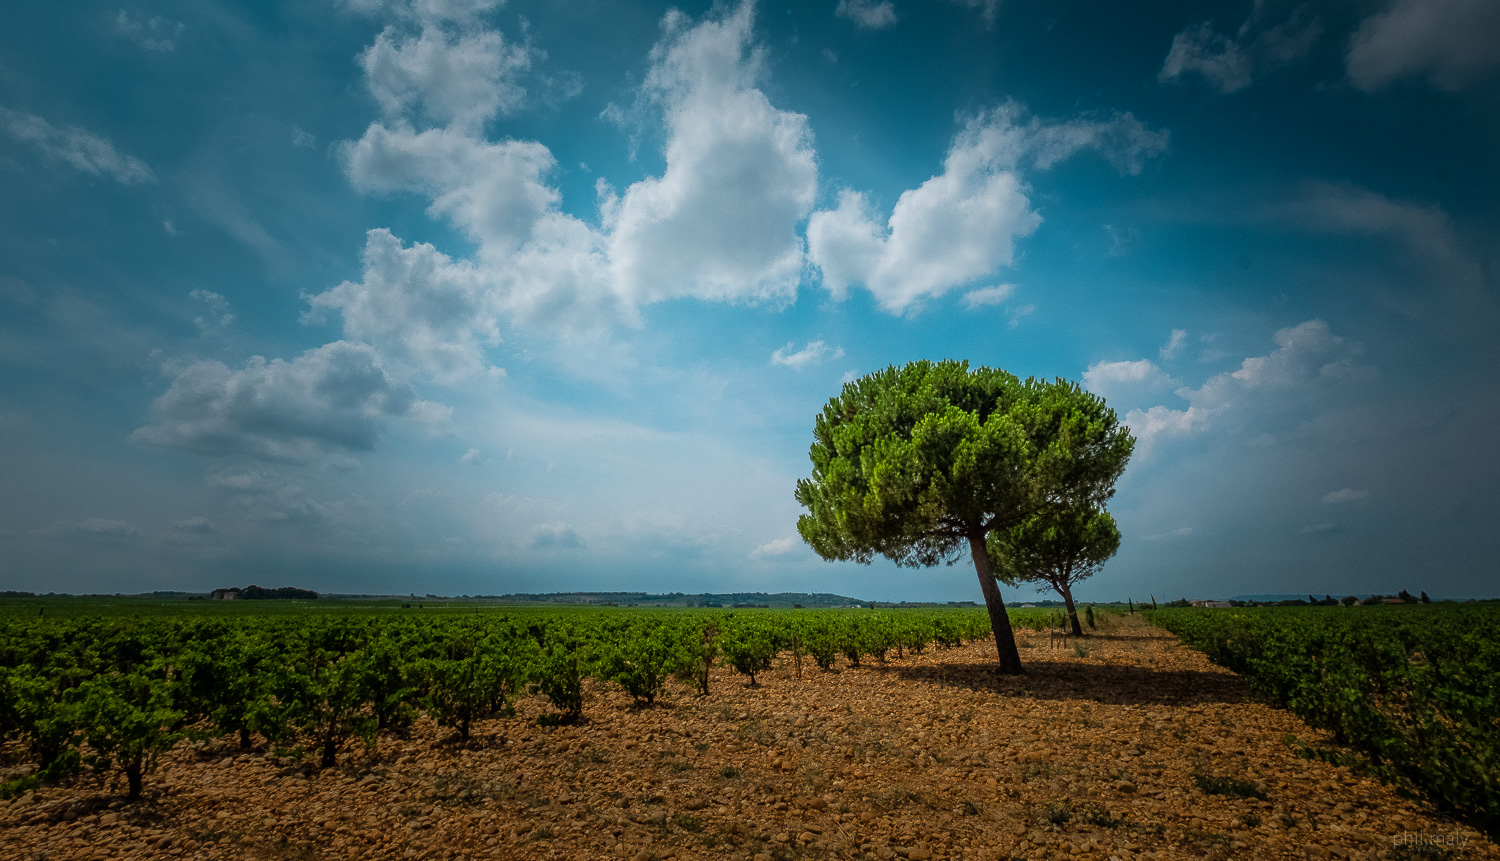 Trees and vineyards of Chateauneuf-du-Pape